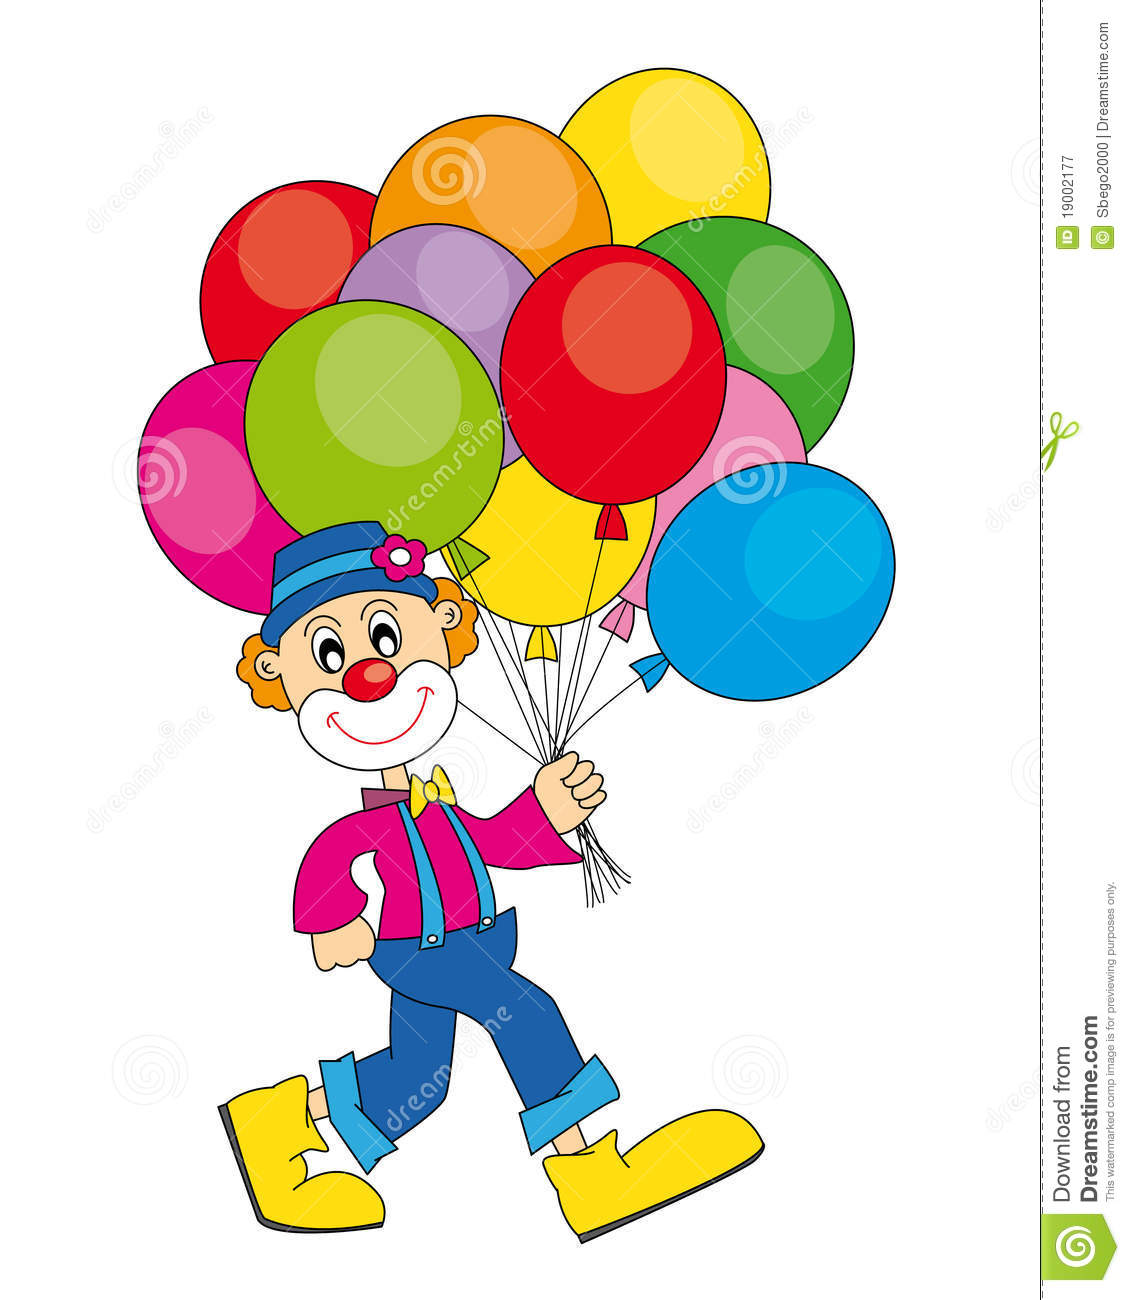 clip art clowns with balloons - photo #4